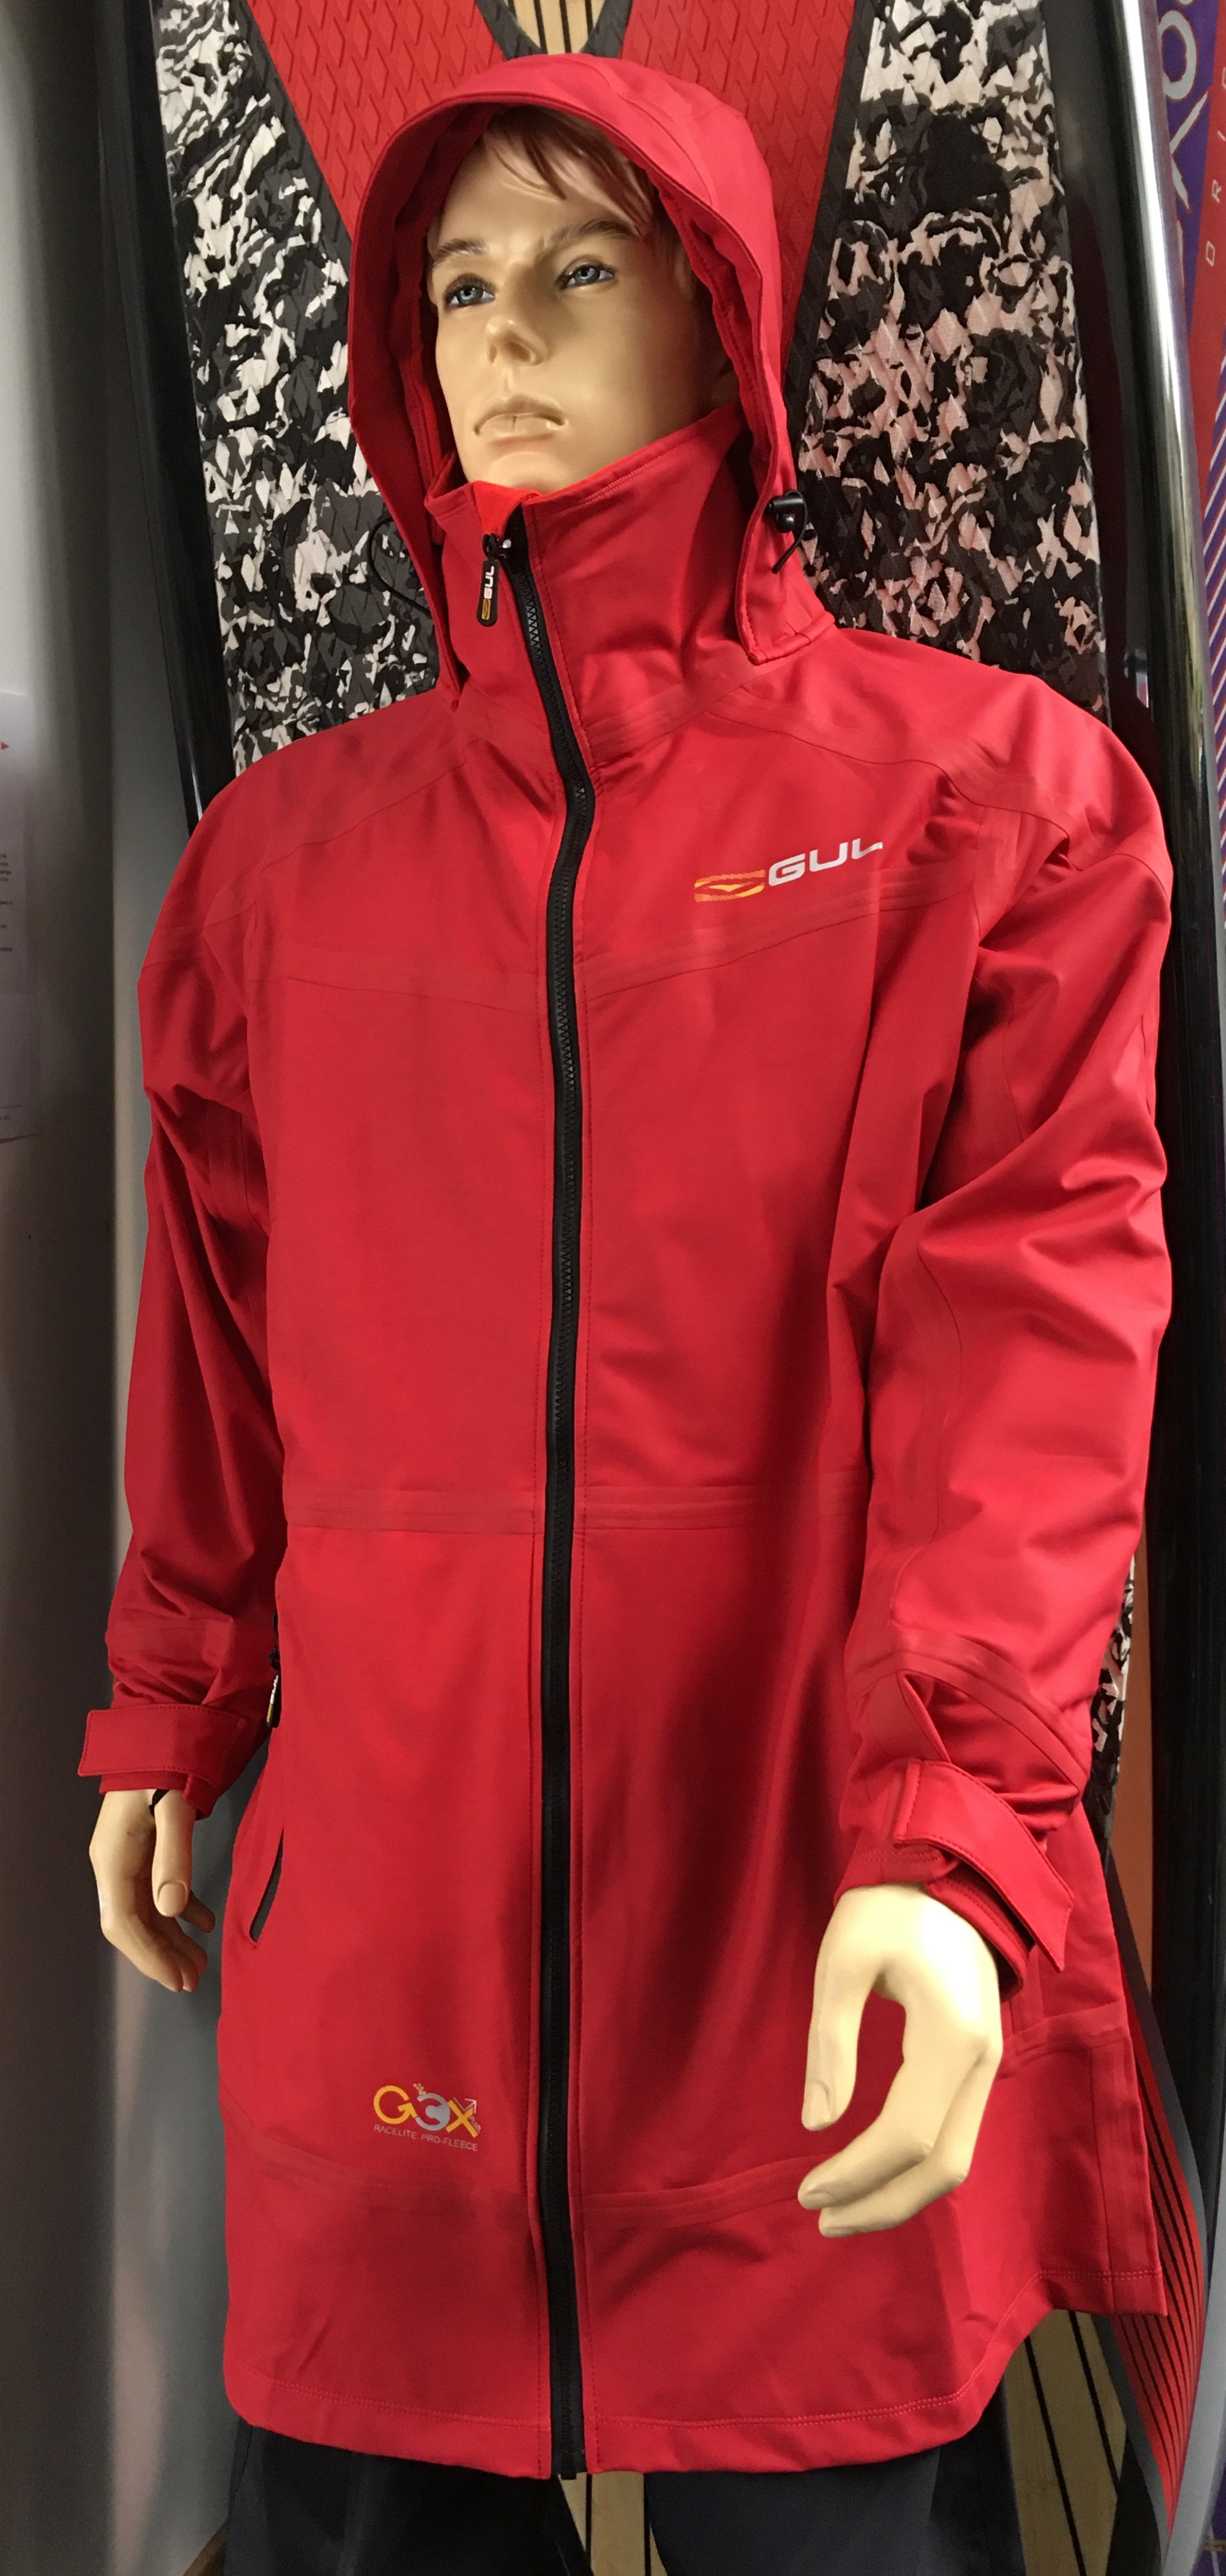 GM0386: GUL Racelite Rigging Jacket - gm0386 xxl red full side _2_.jpg